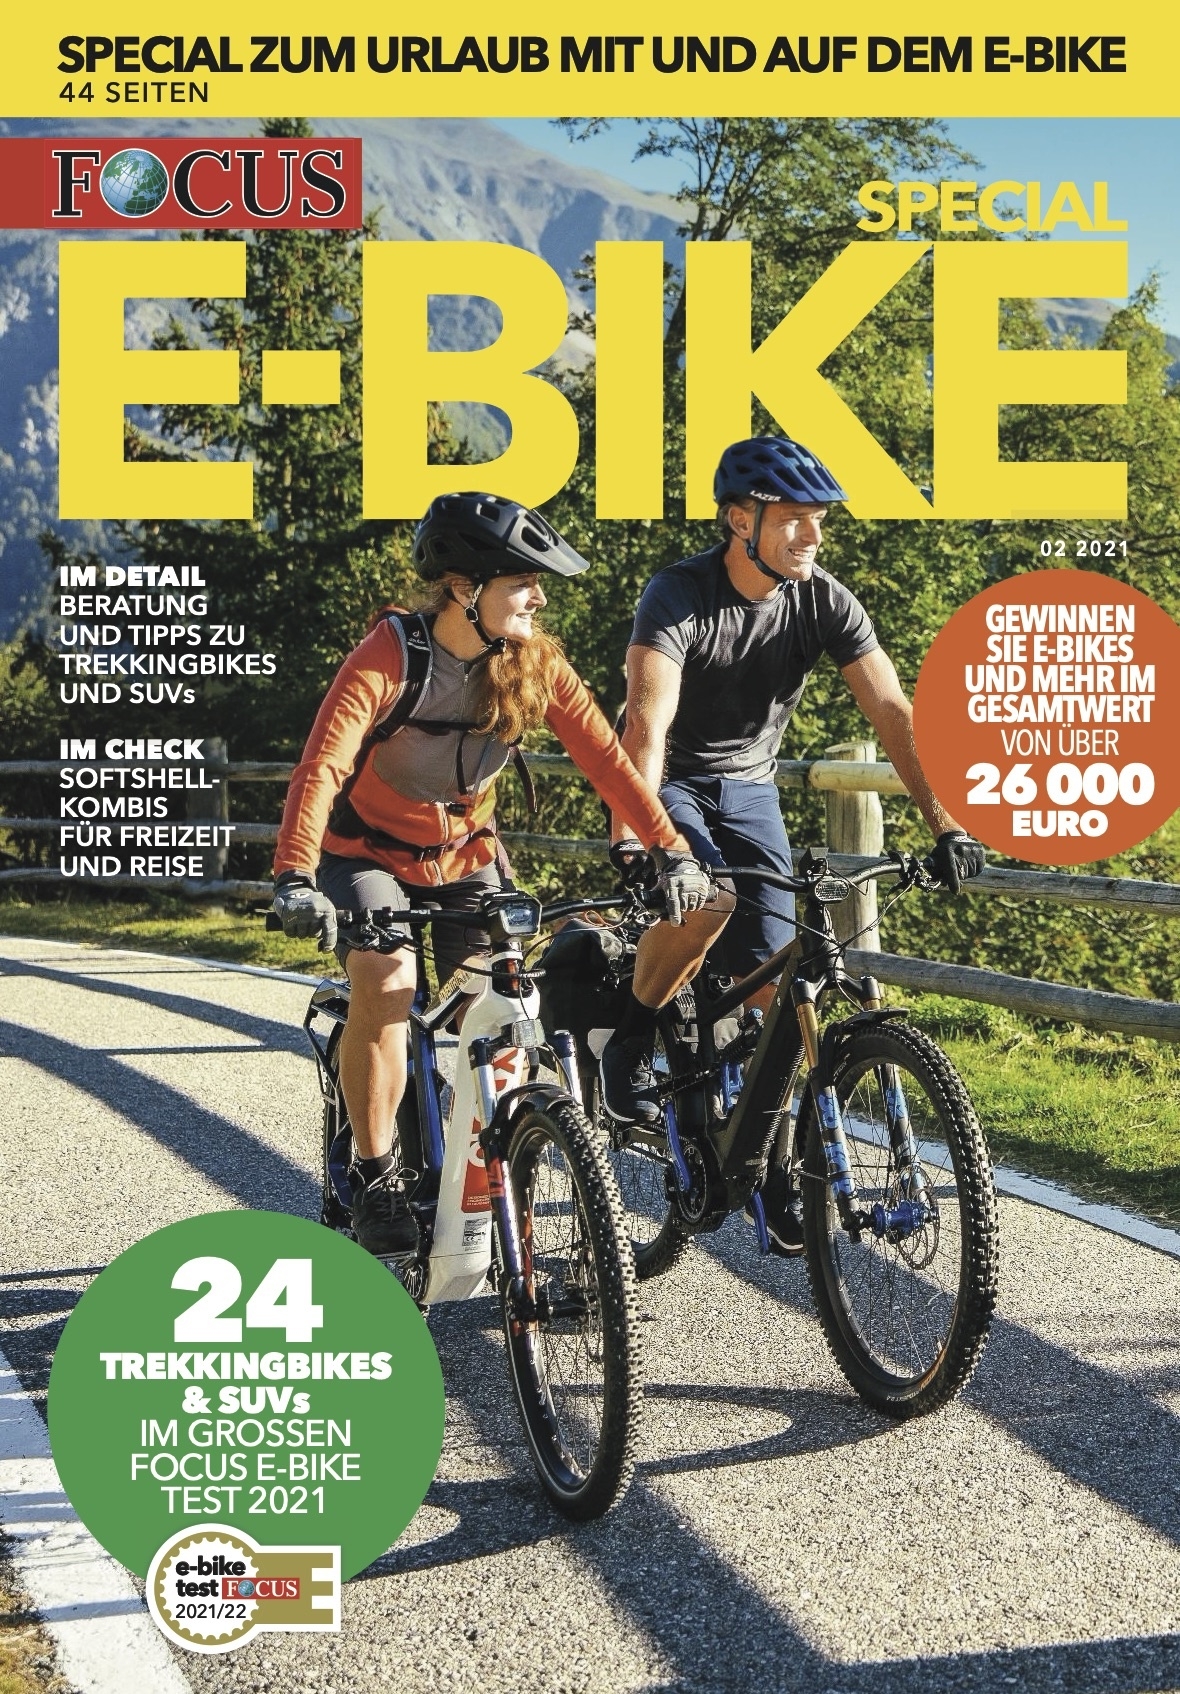 FOCUS E-BIKE 02/2021